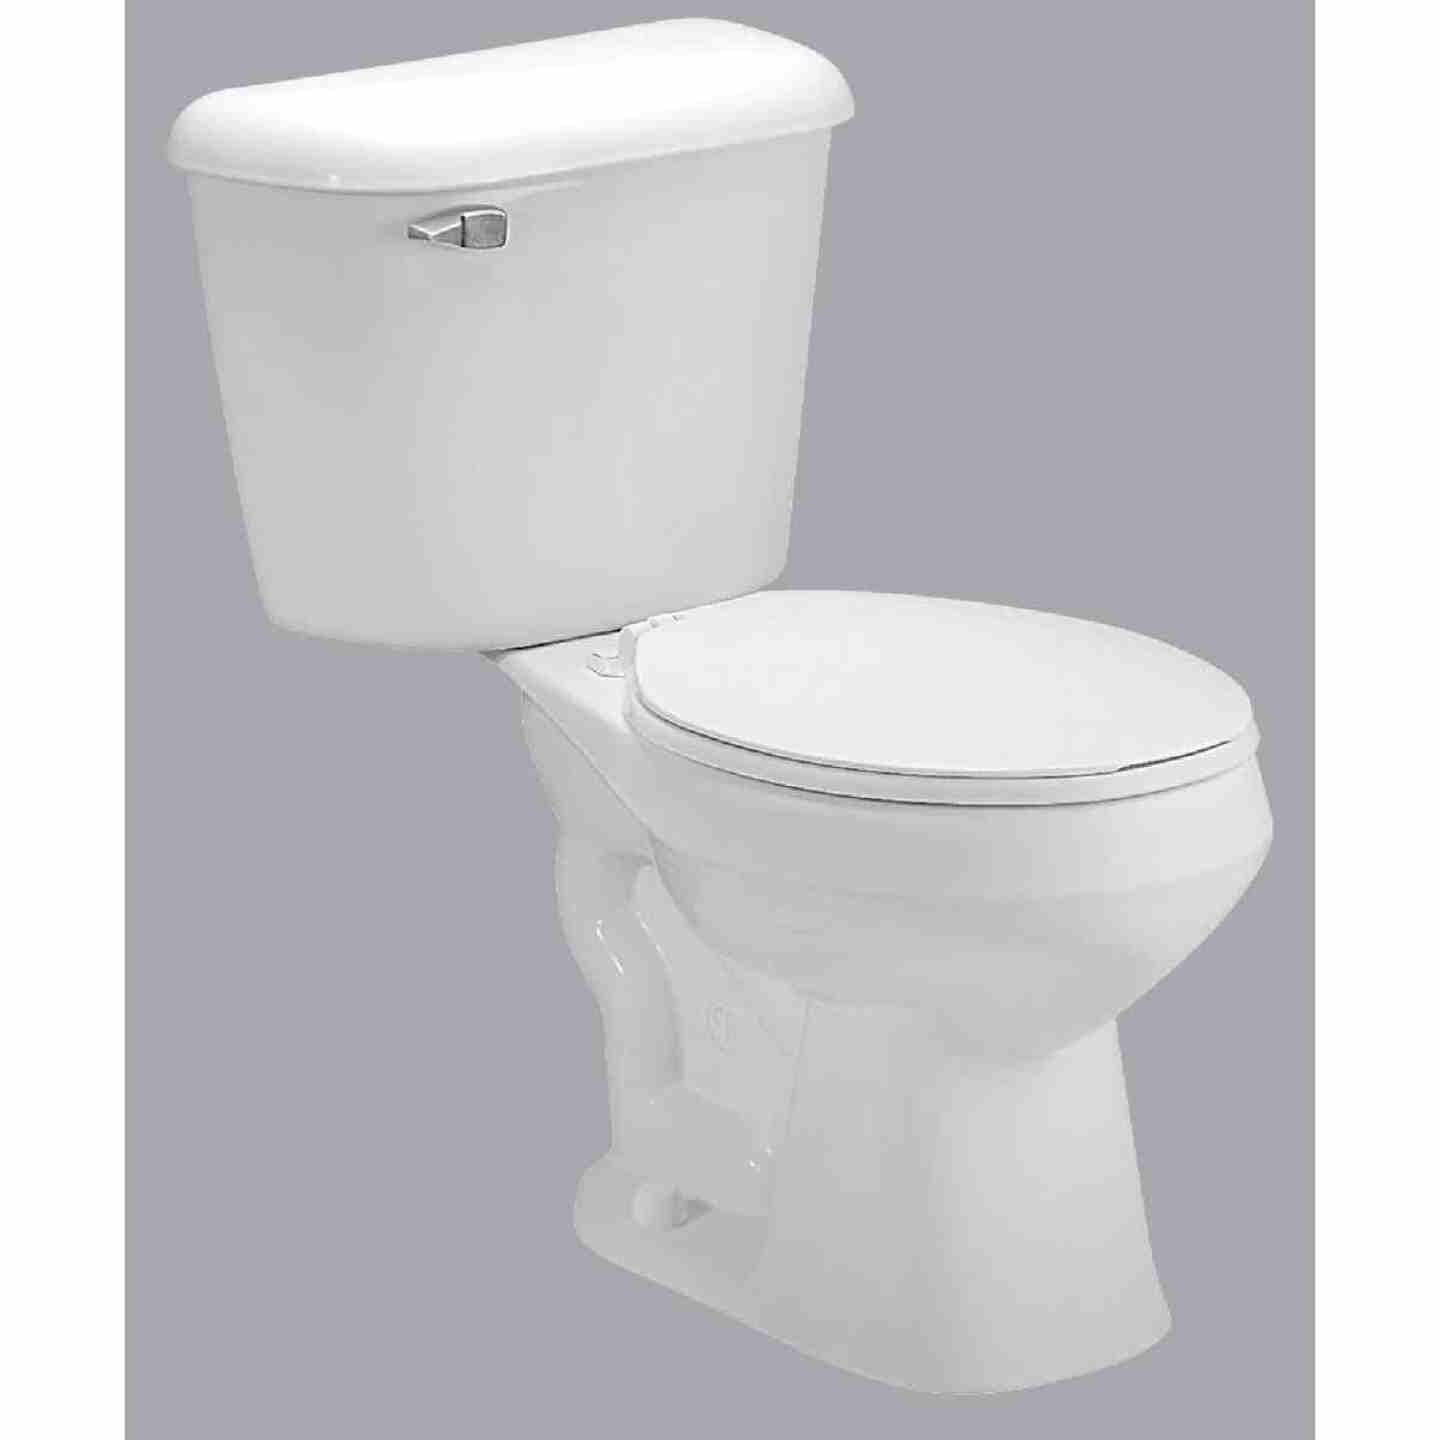 Mansfield Pro-Fit 1 White Round Bowl 1.6 GPF Complete Toilet Image 1